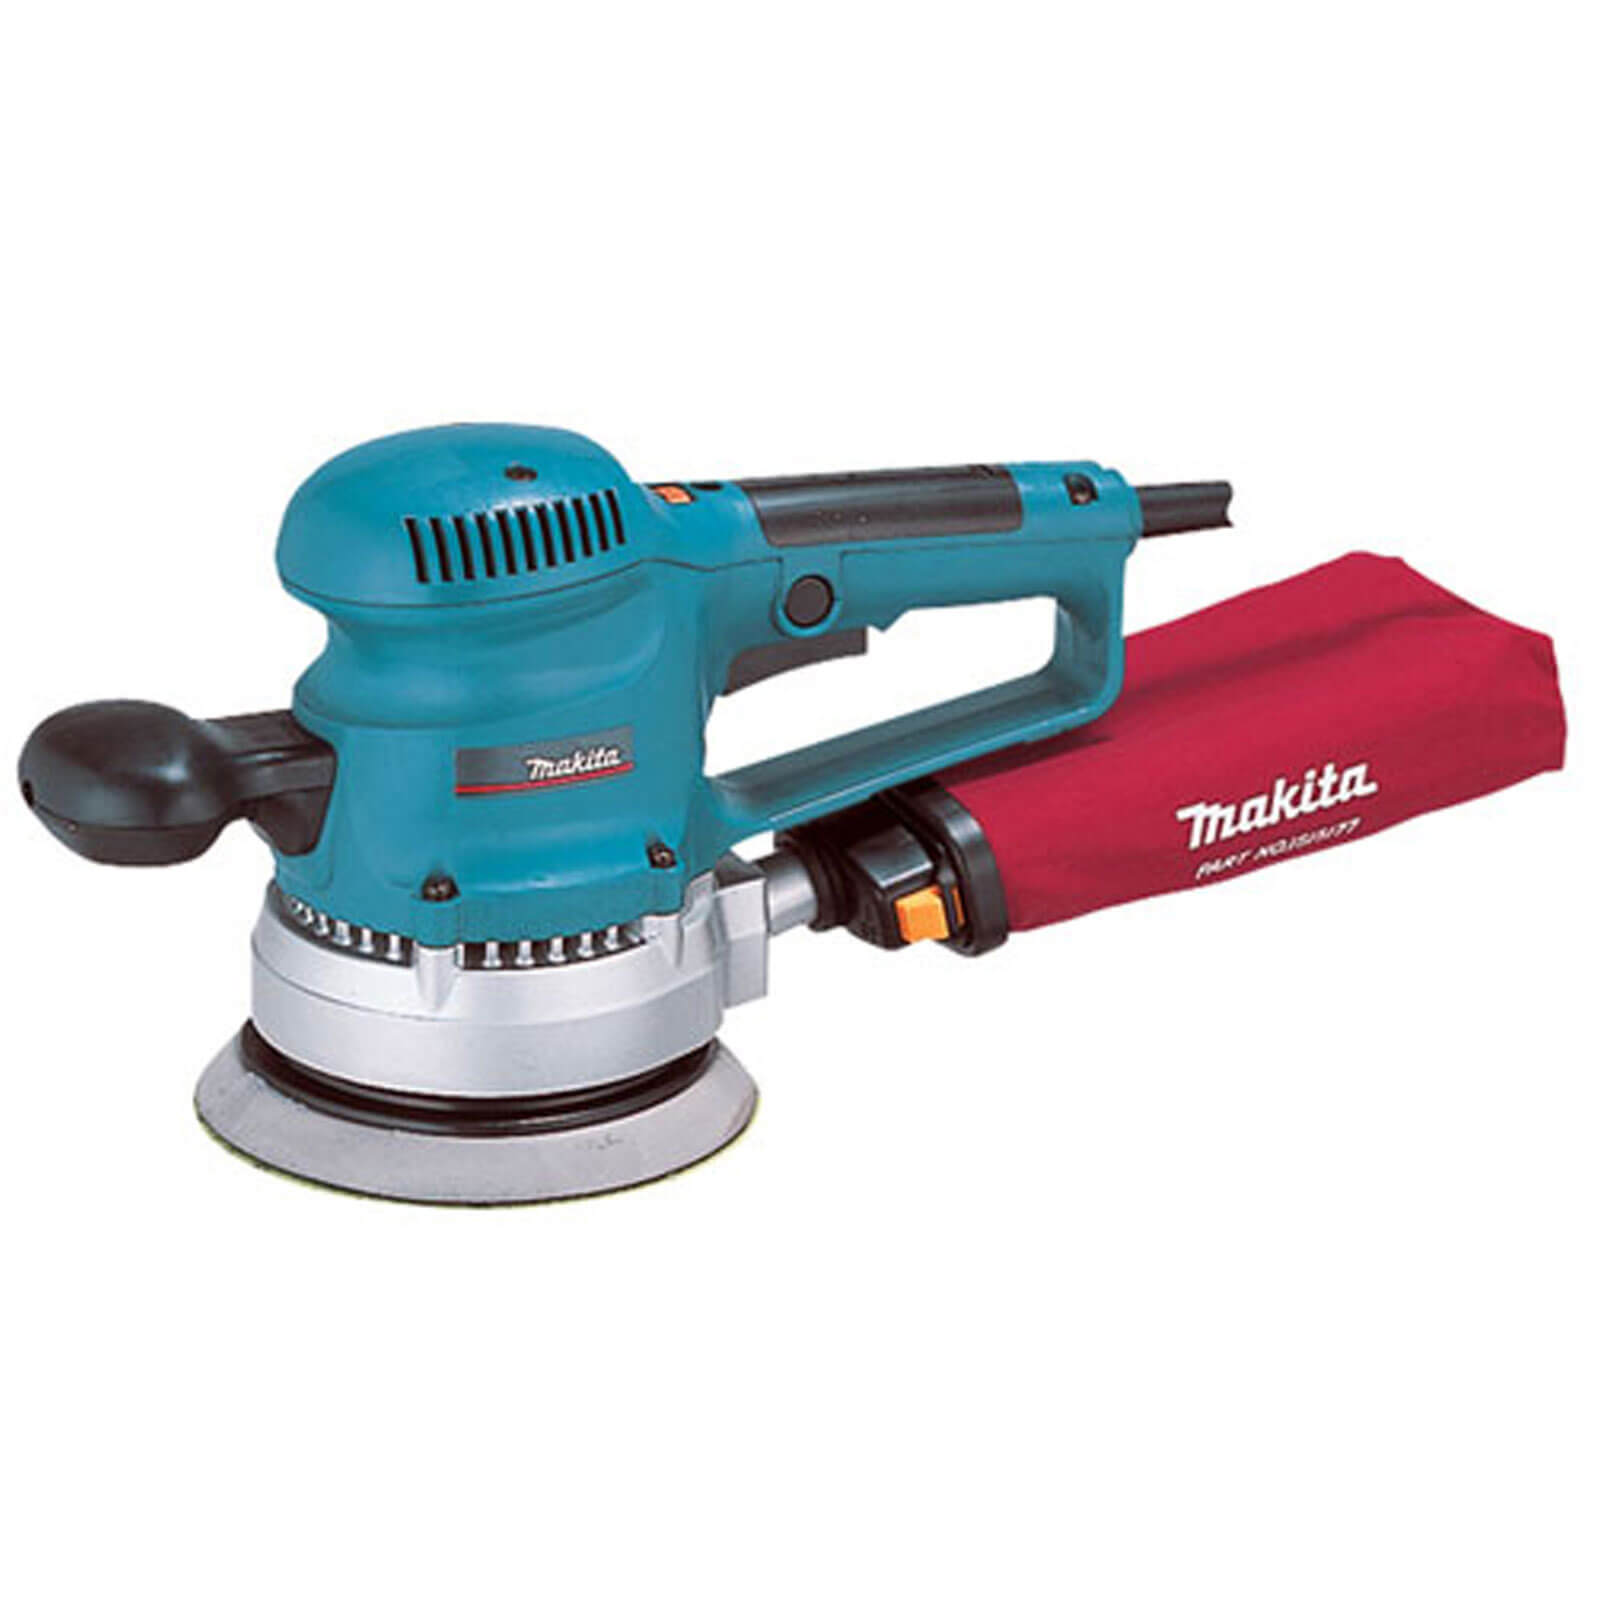 Image of Makita BO6030 Random Orbit Sander with Variable Speed 150mm Disc 240v